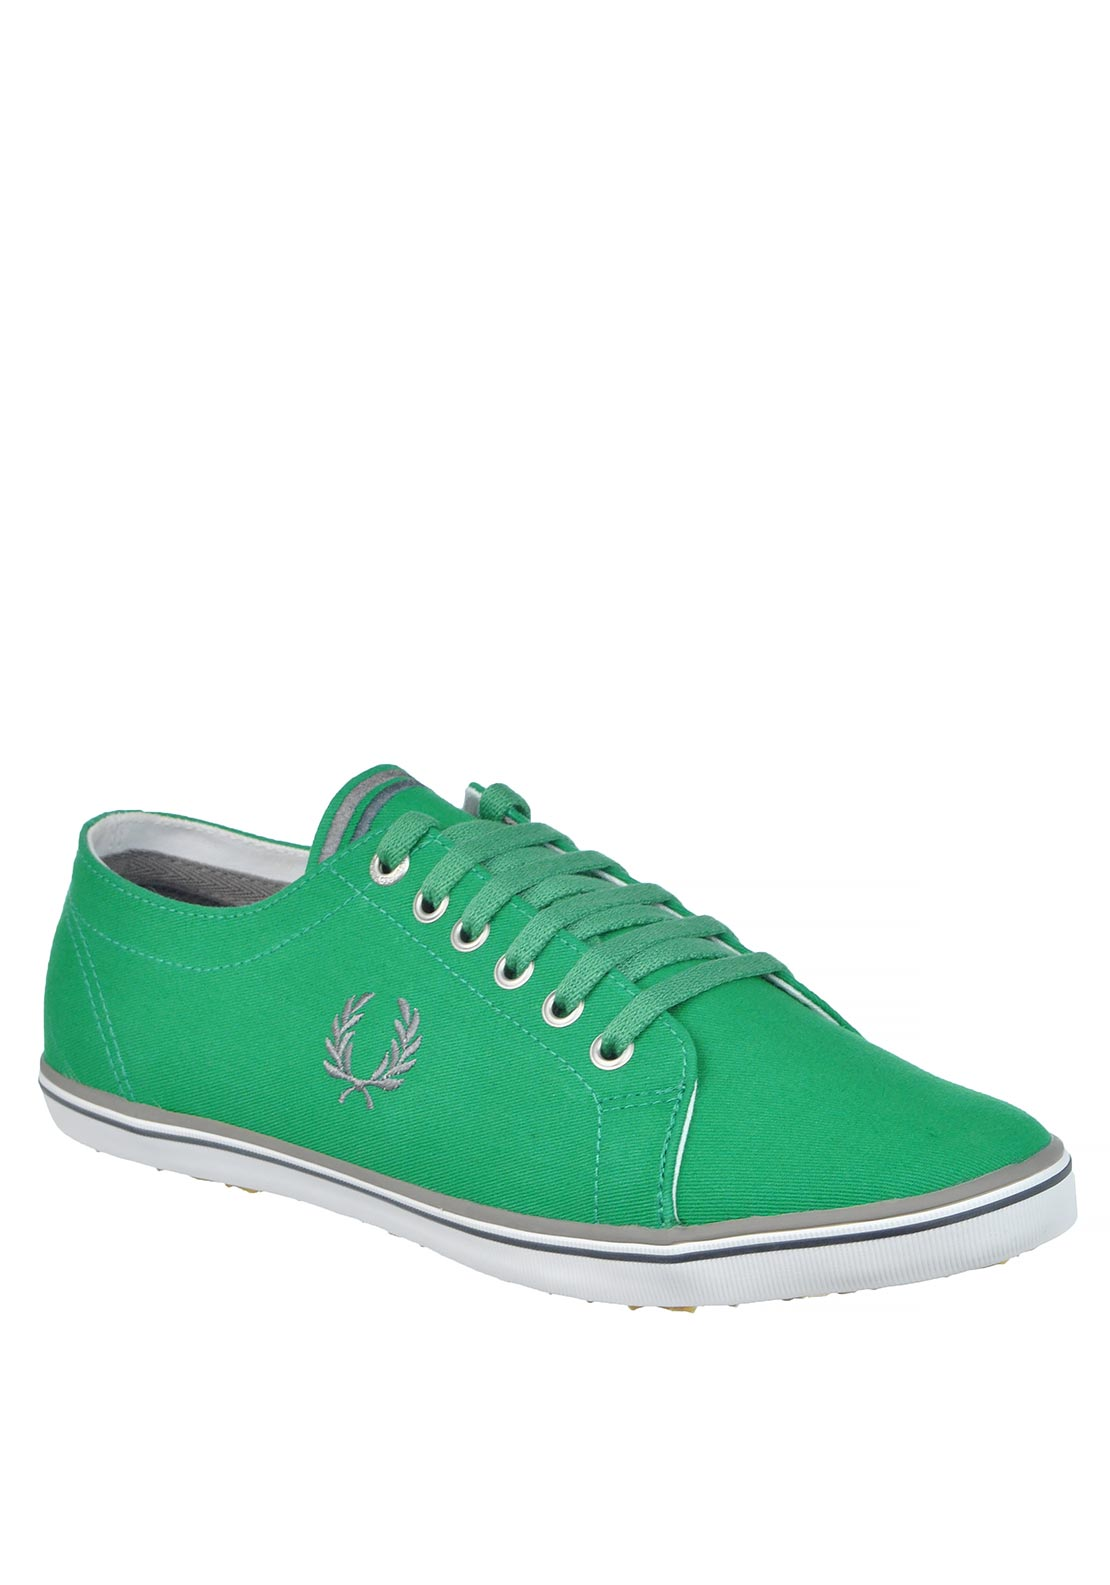 Fred Perry Mens Kingston Twill Shoe, Green